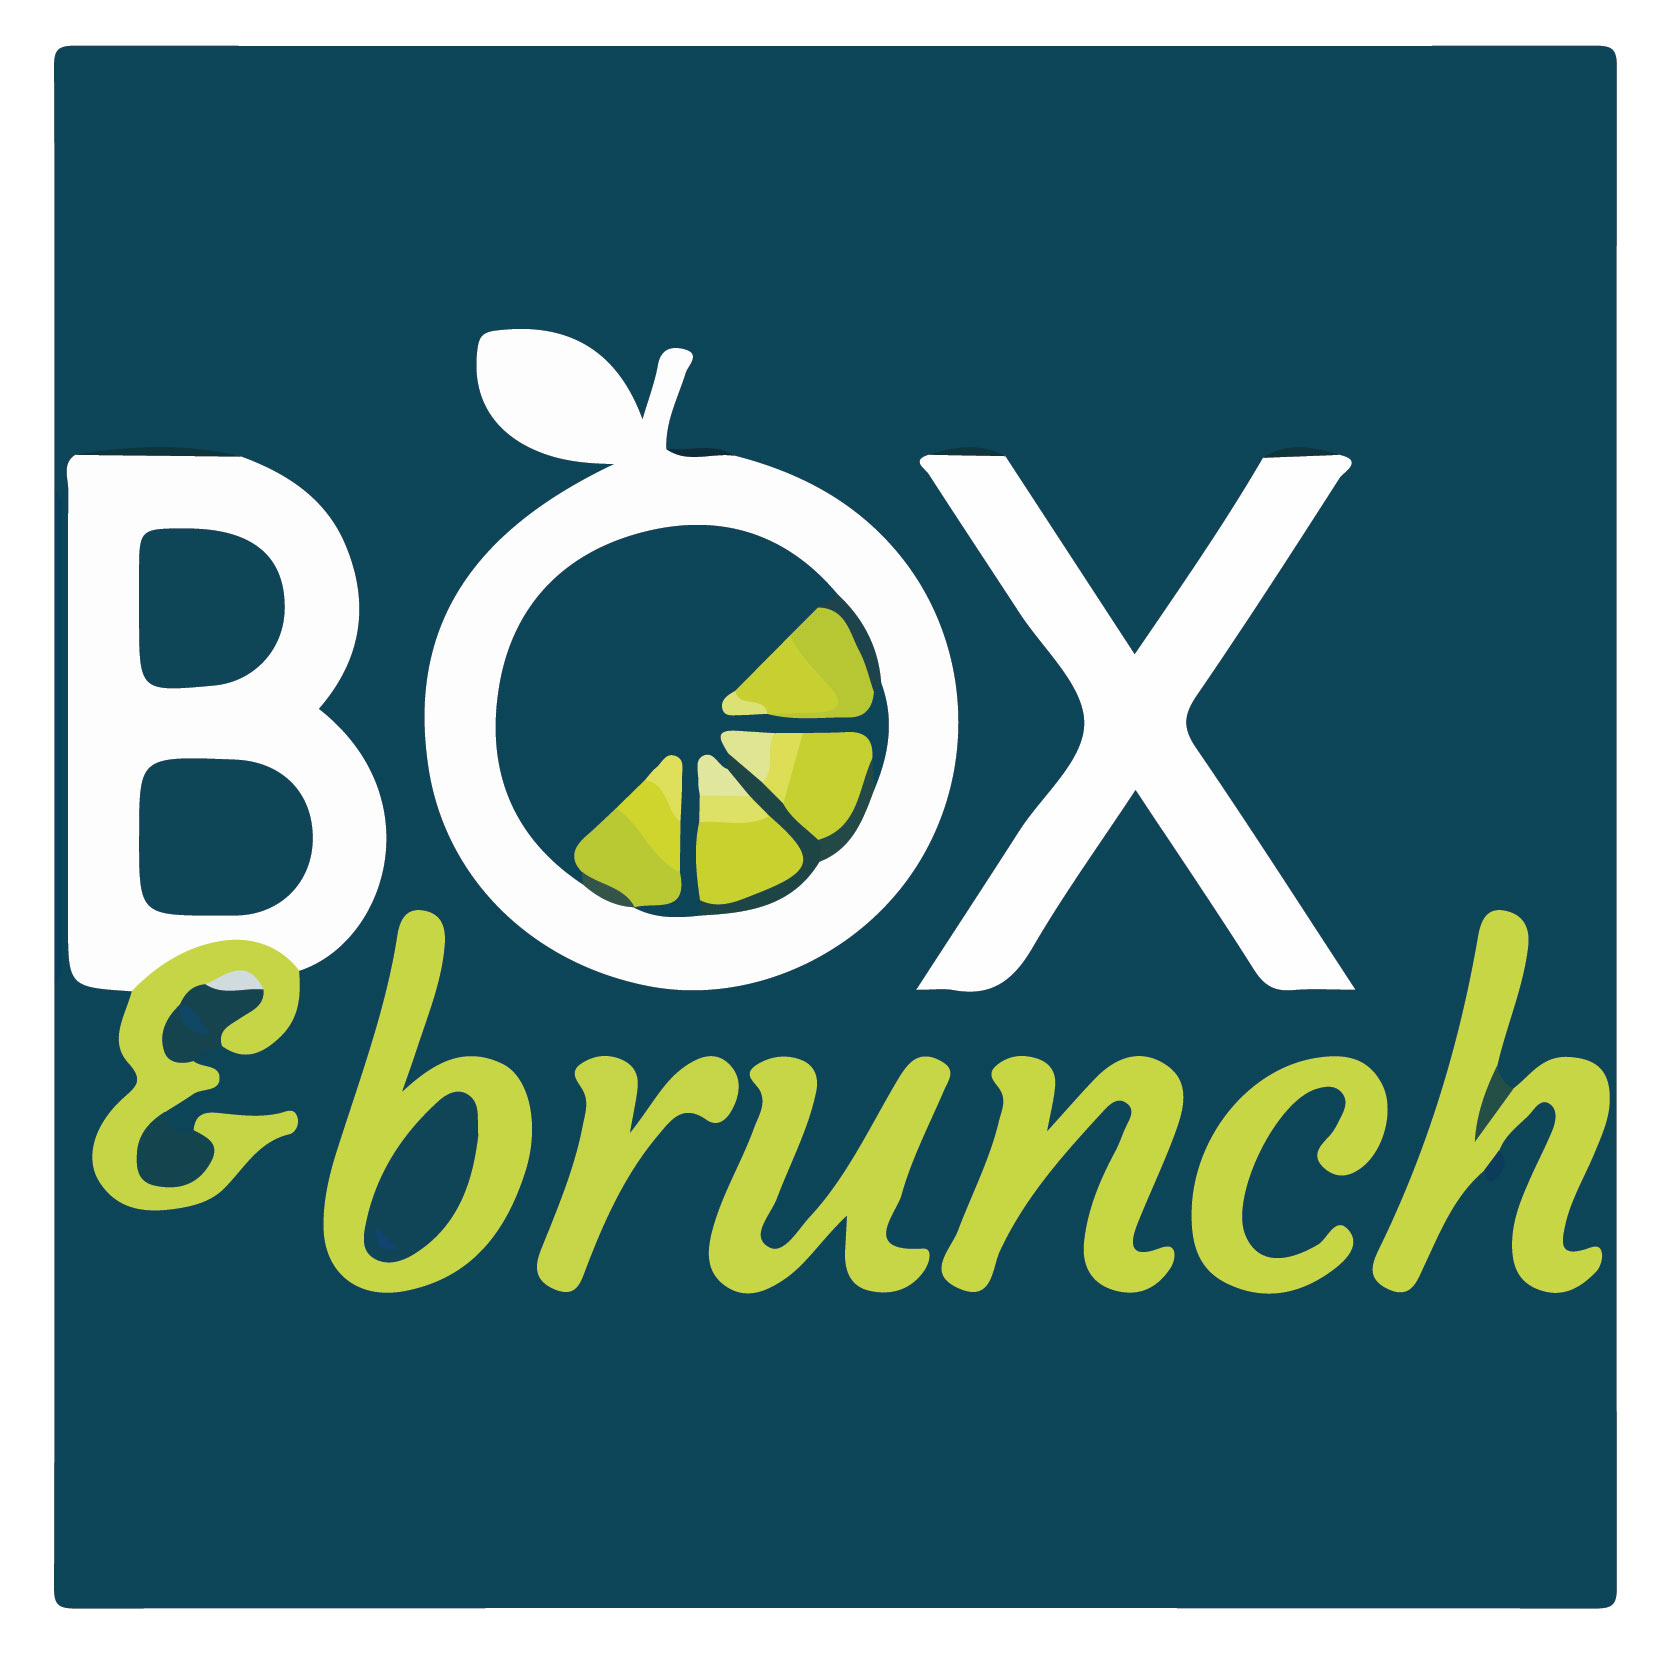 BOX&BRUNCH